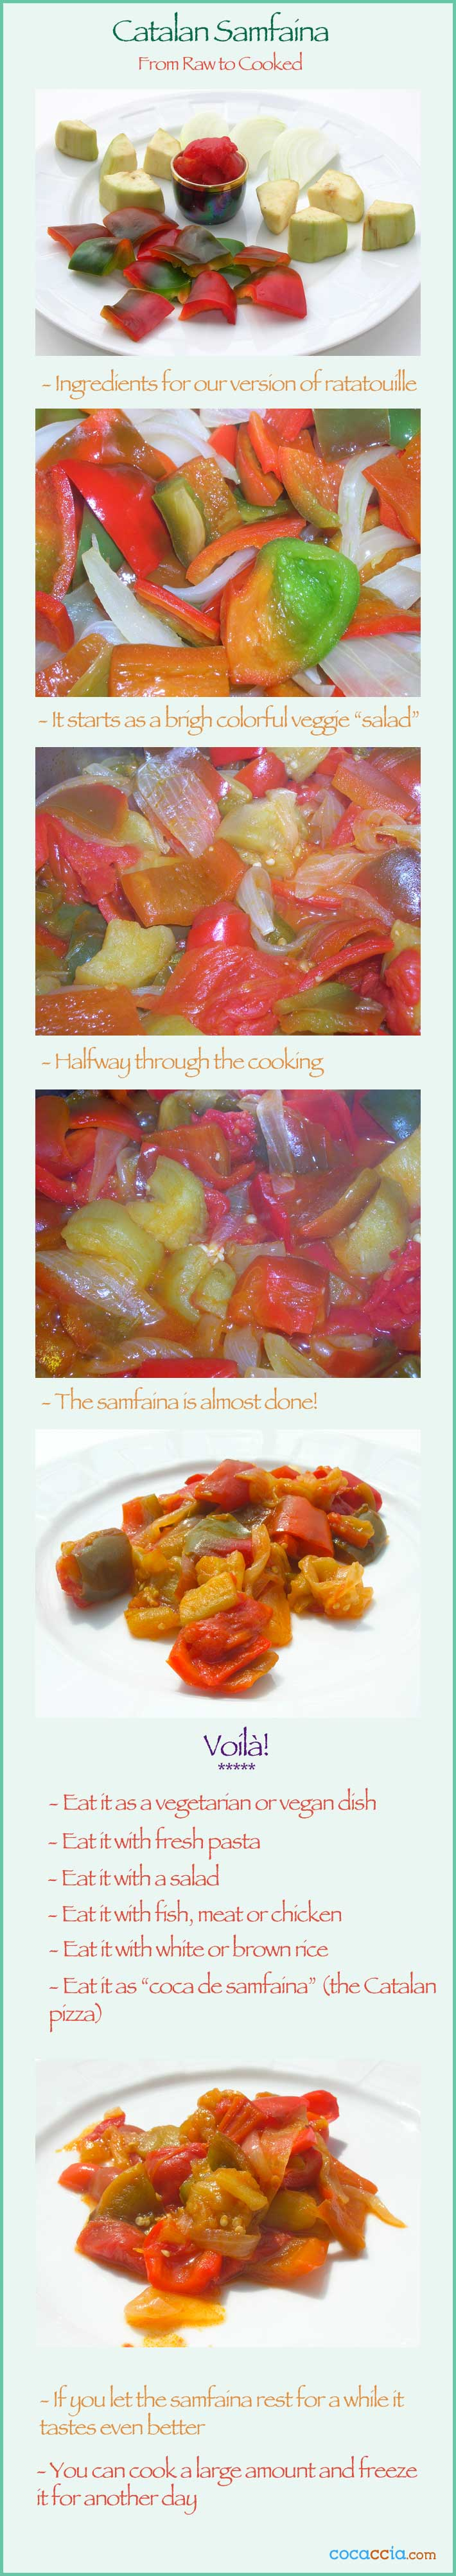 Samfaina Recipe